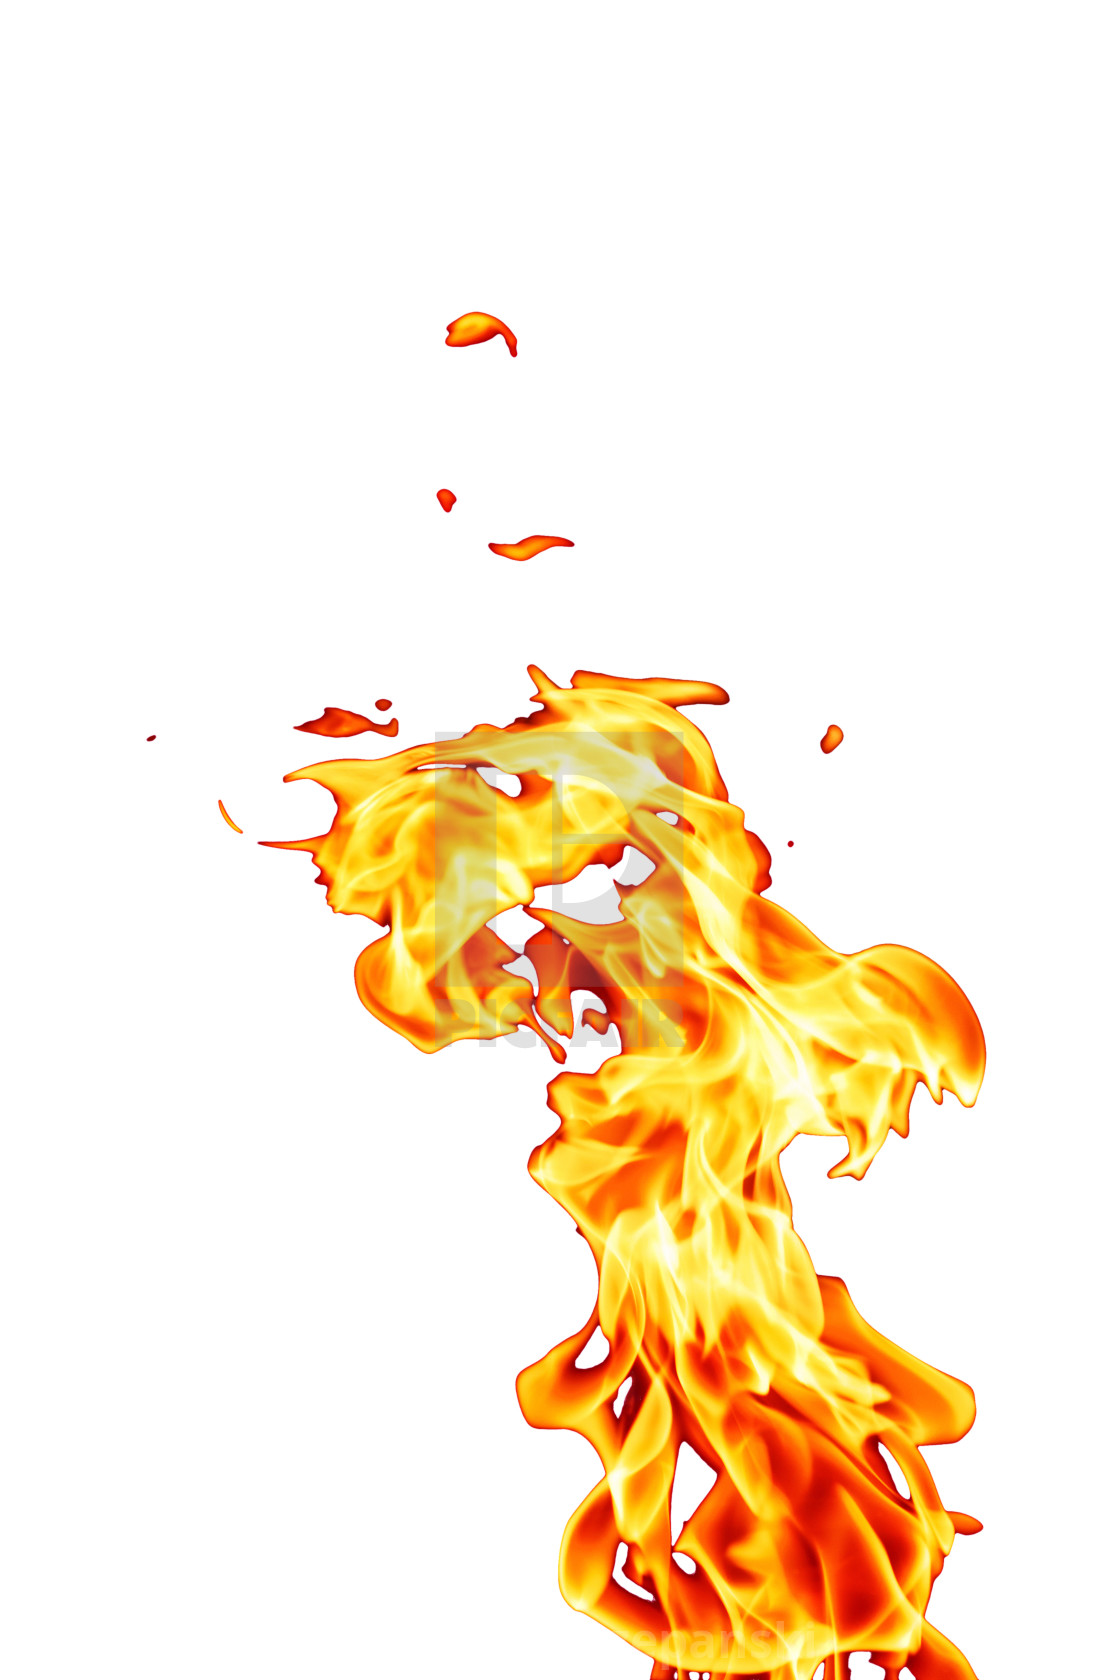 fire on white background orange fire flame isolated on white background license 558